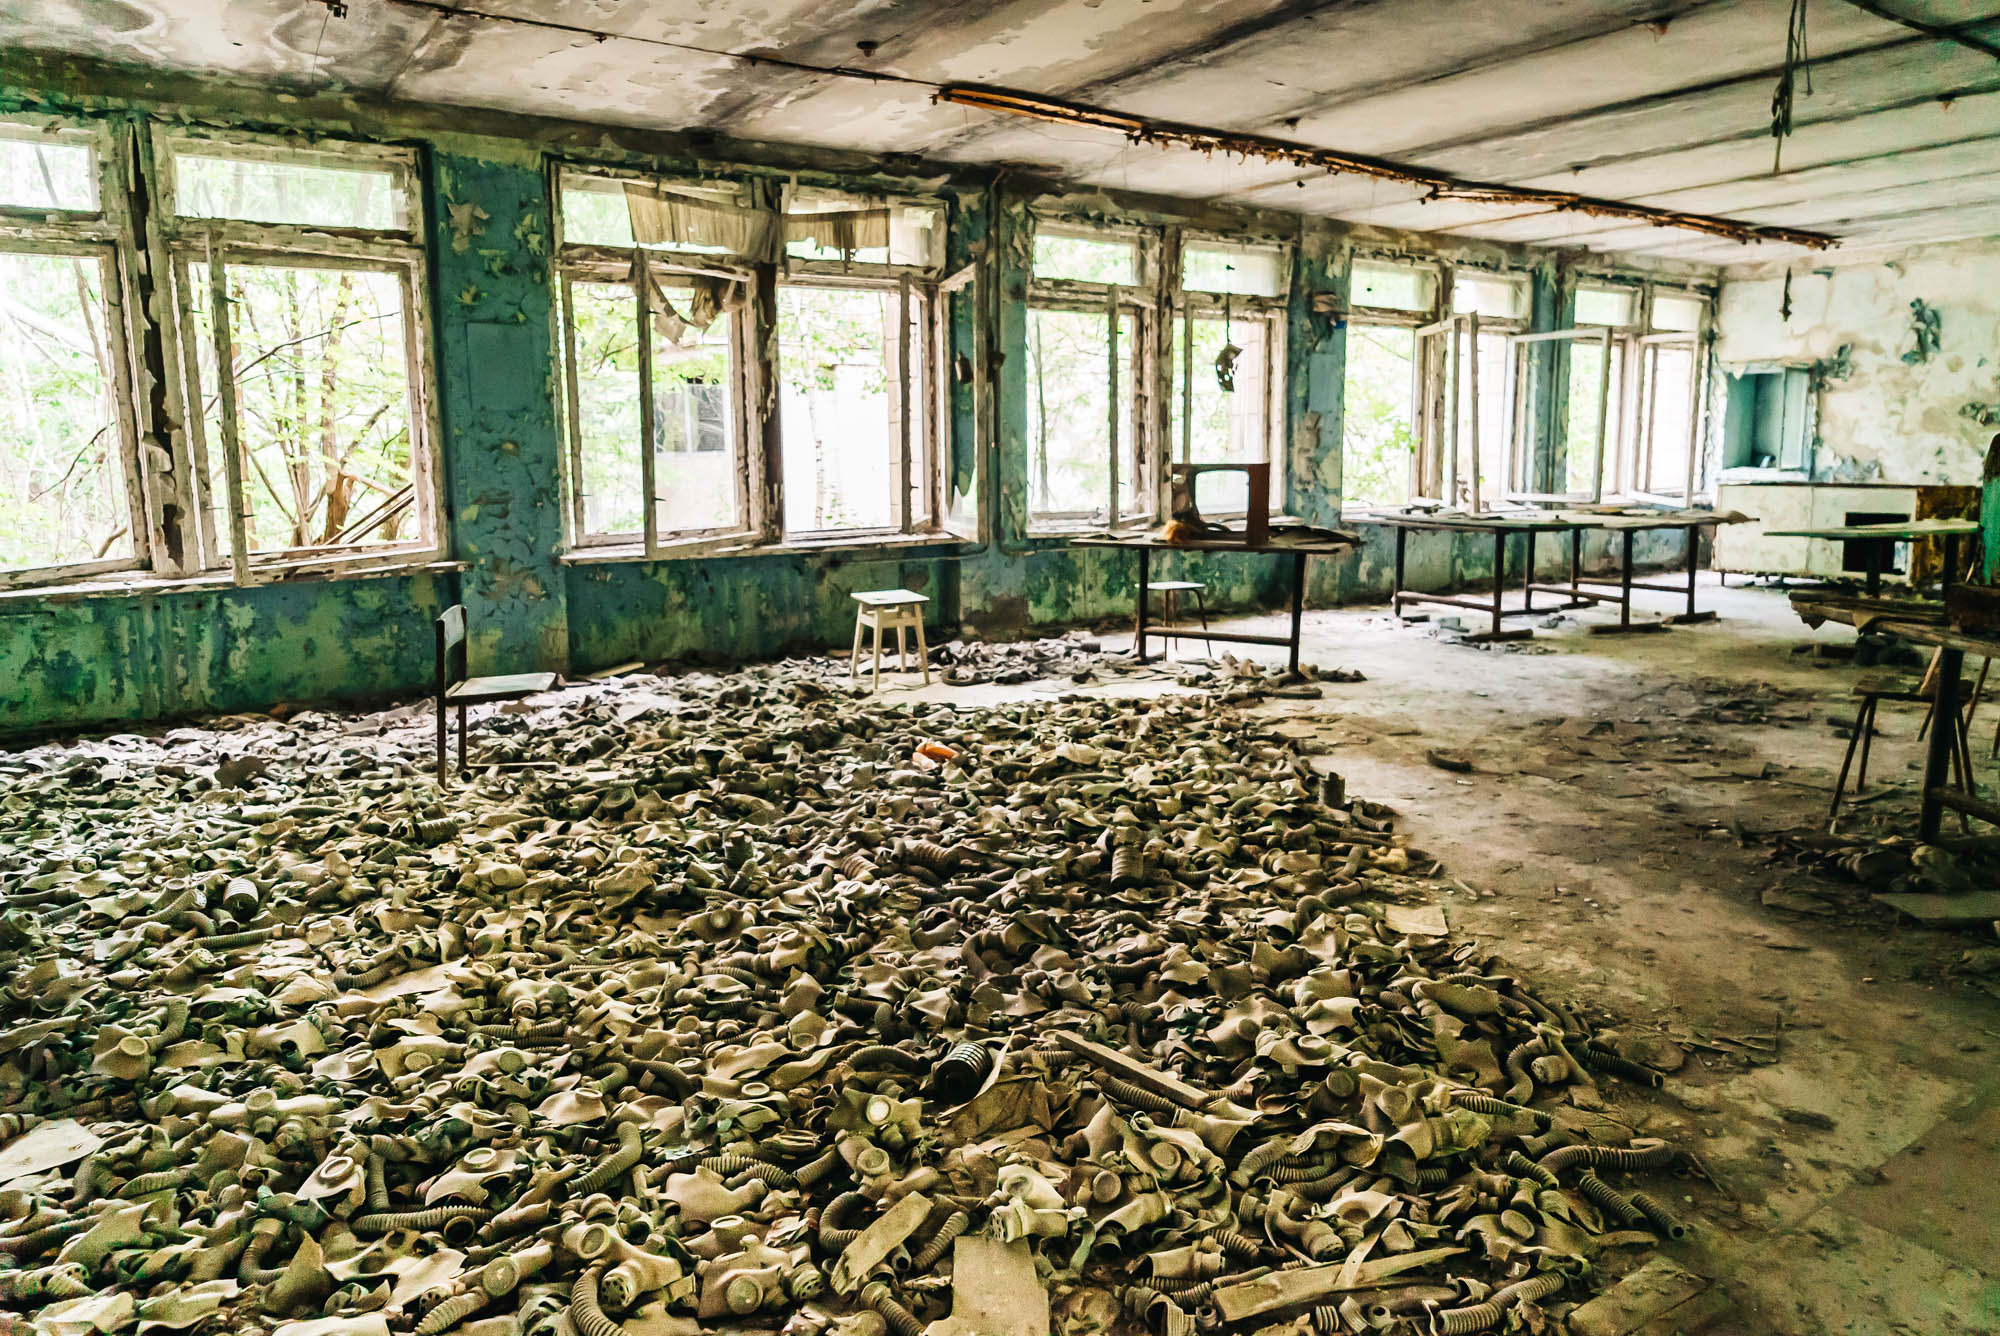 Hundreds of children's gas masks laying on the floor of an abandoned school in Pripyat